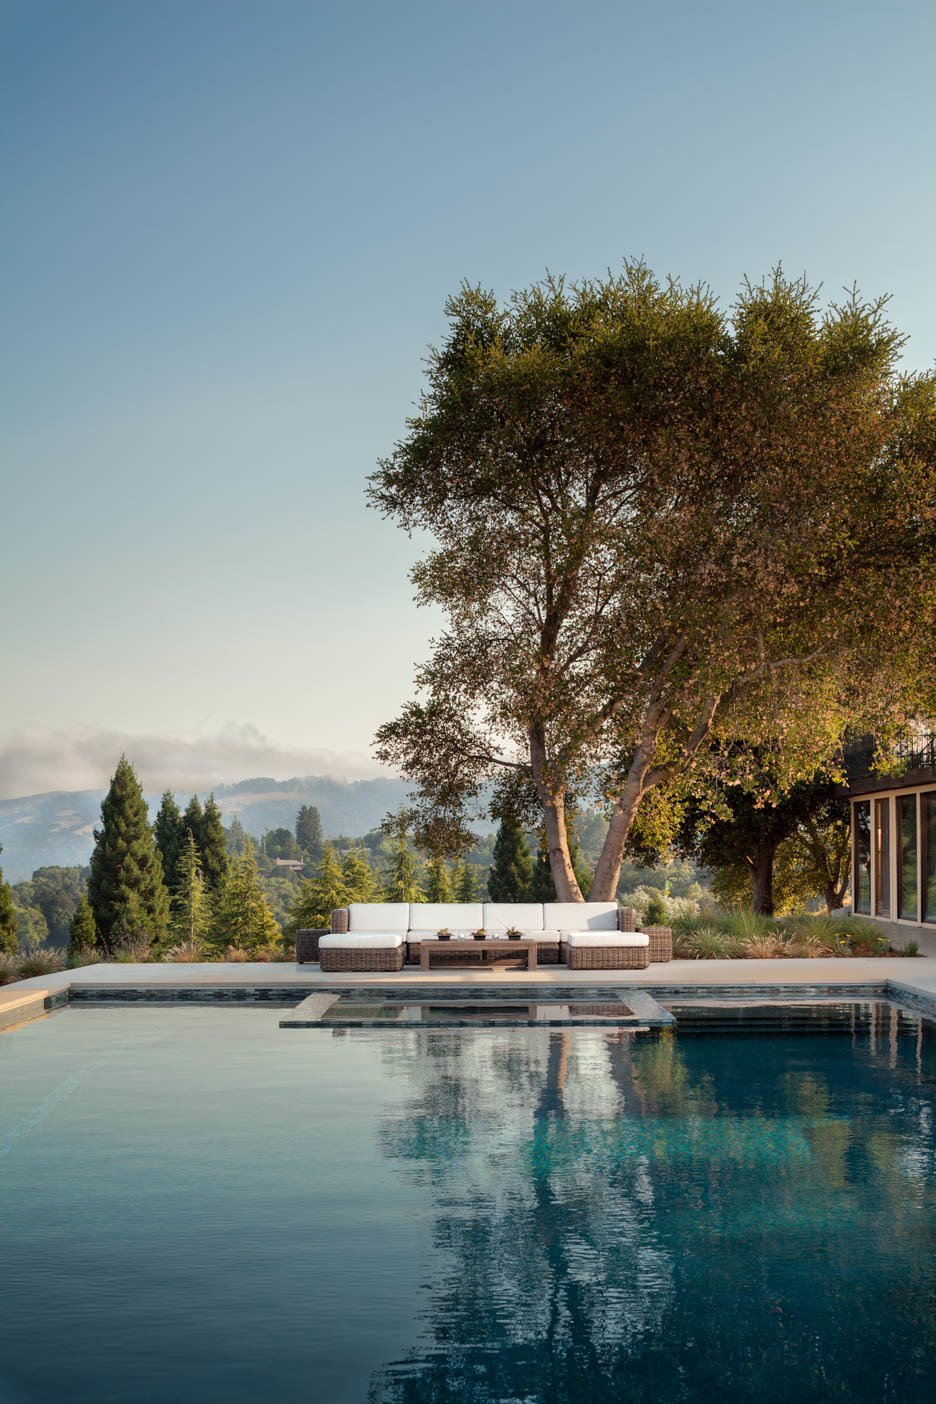 Tagged: Outdoor, Back Yard, Trees, Hardscapes, Large Pools, Tubs, Shower, and Large Patio, Porch, Deck.  A pool with a view by Agnieszka Jakubowicz